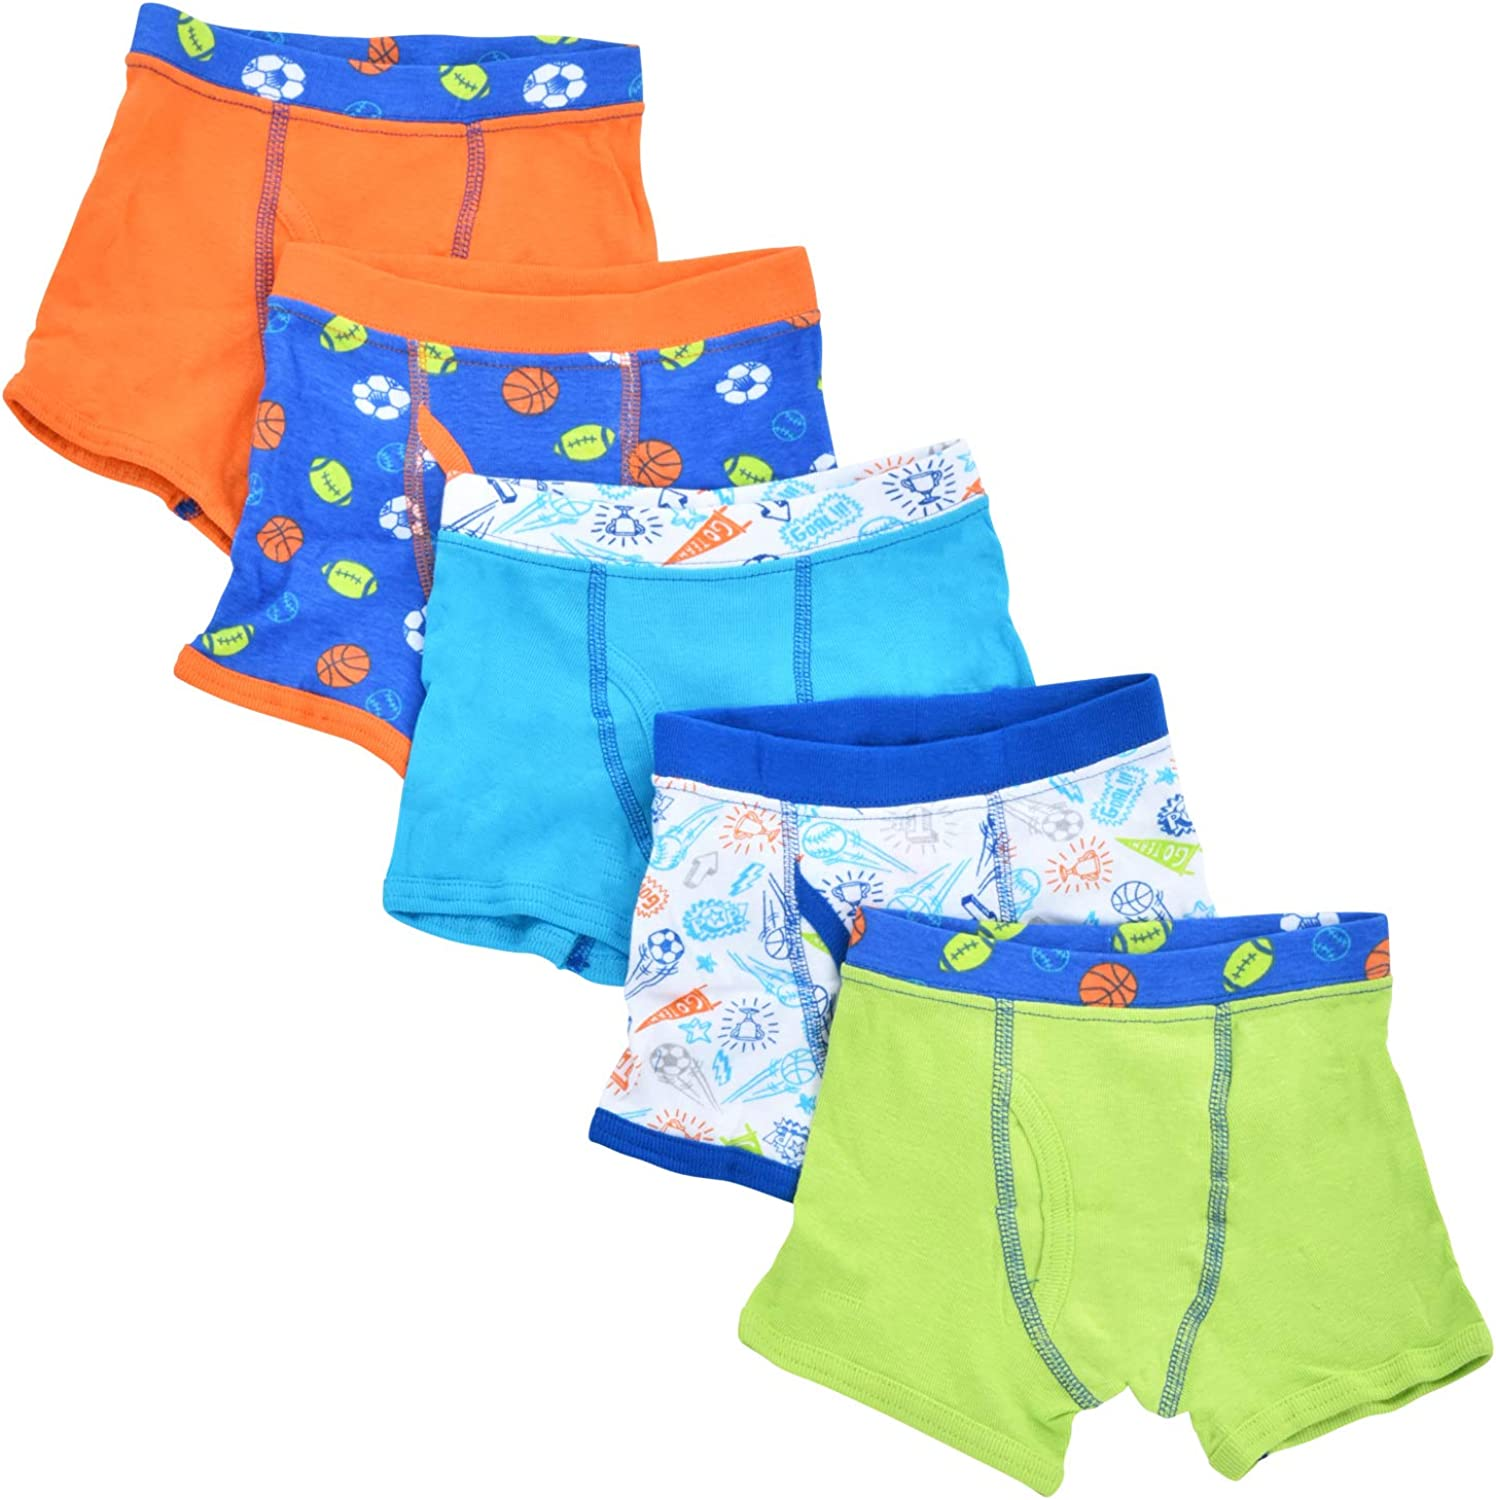 5 Pack Boys Toddler Boxer Brief Cotton Tag-Free